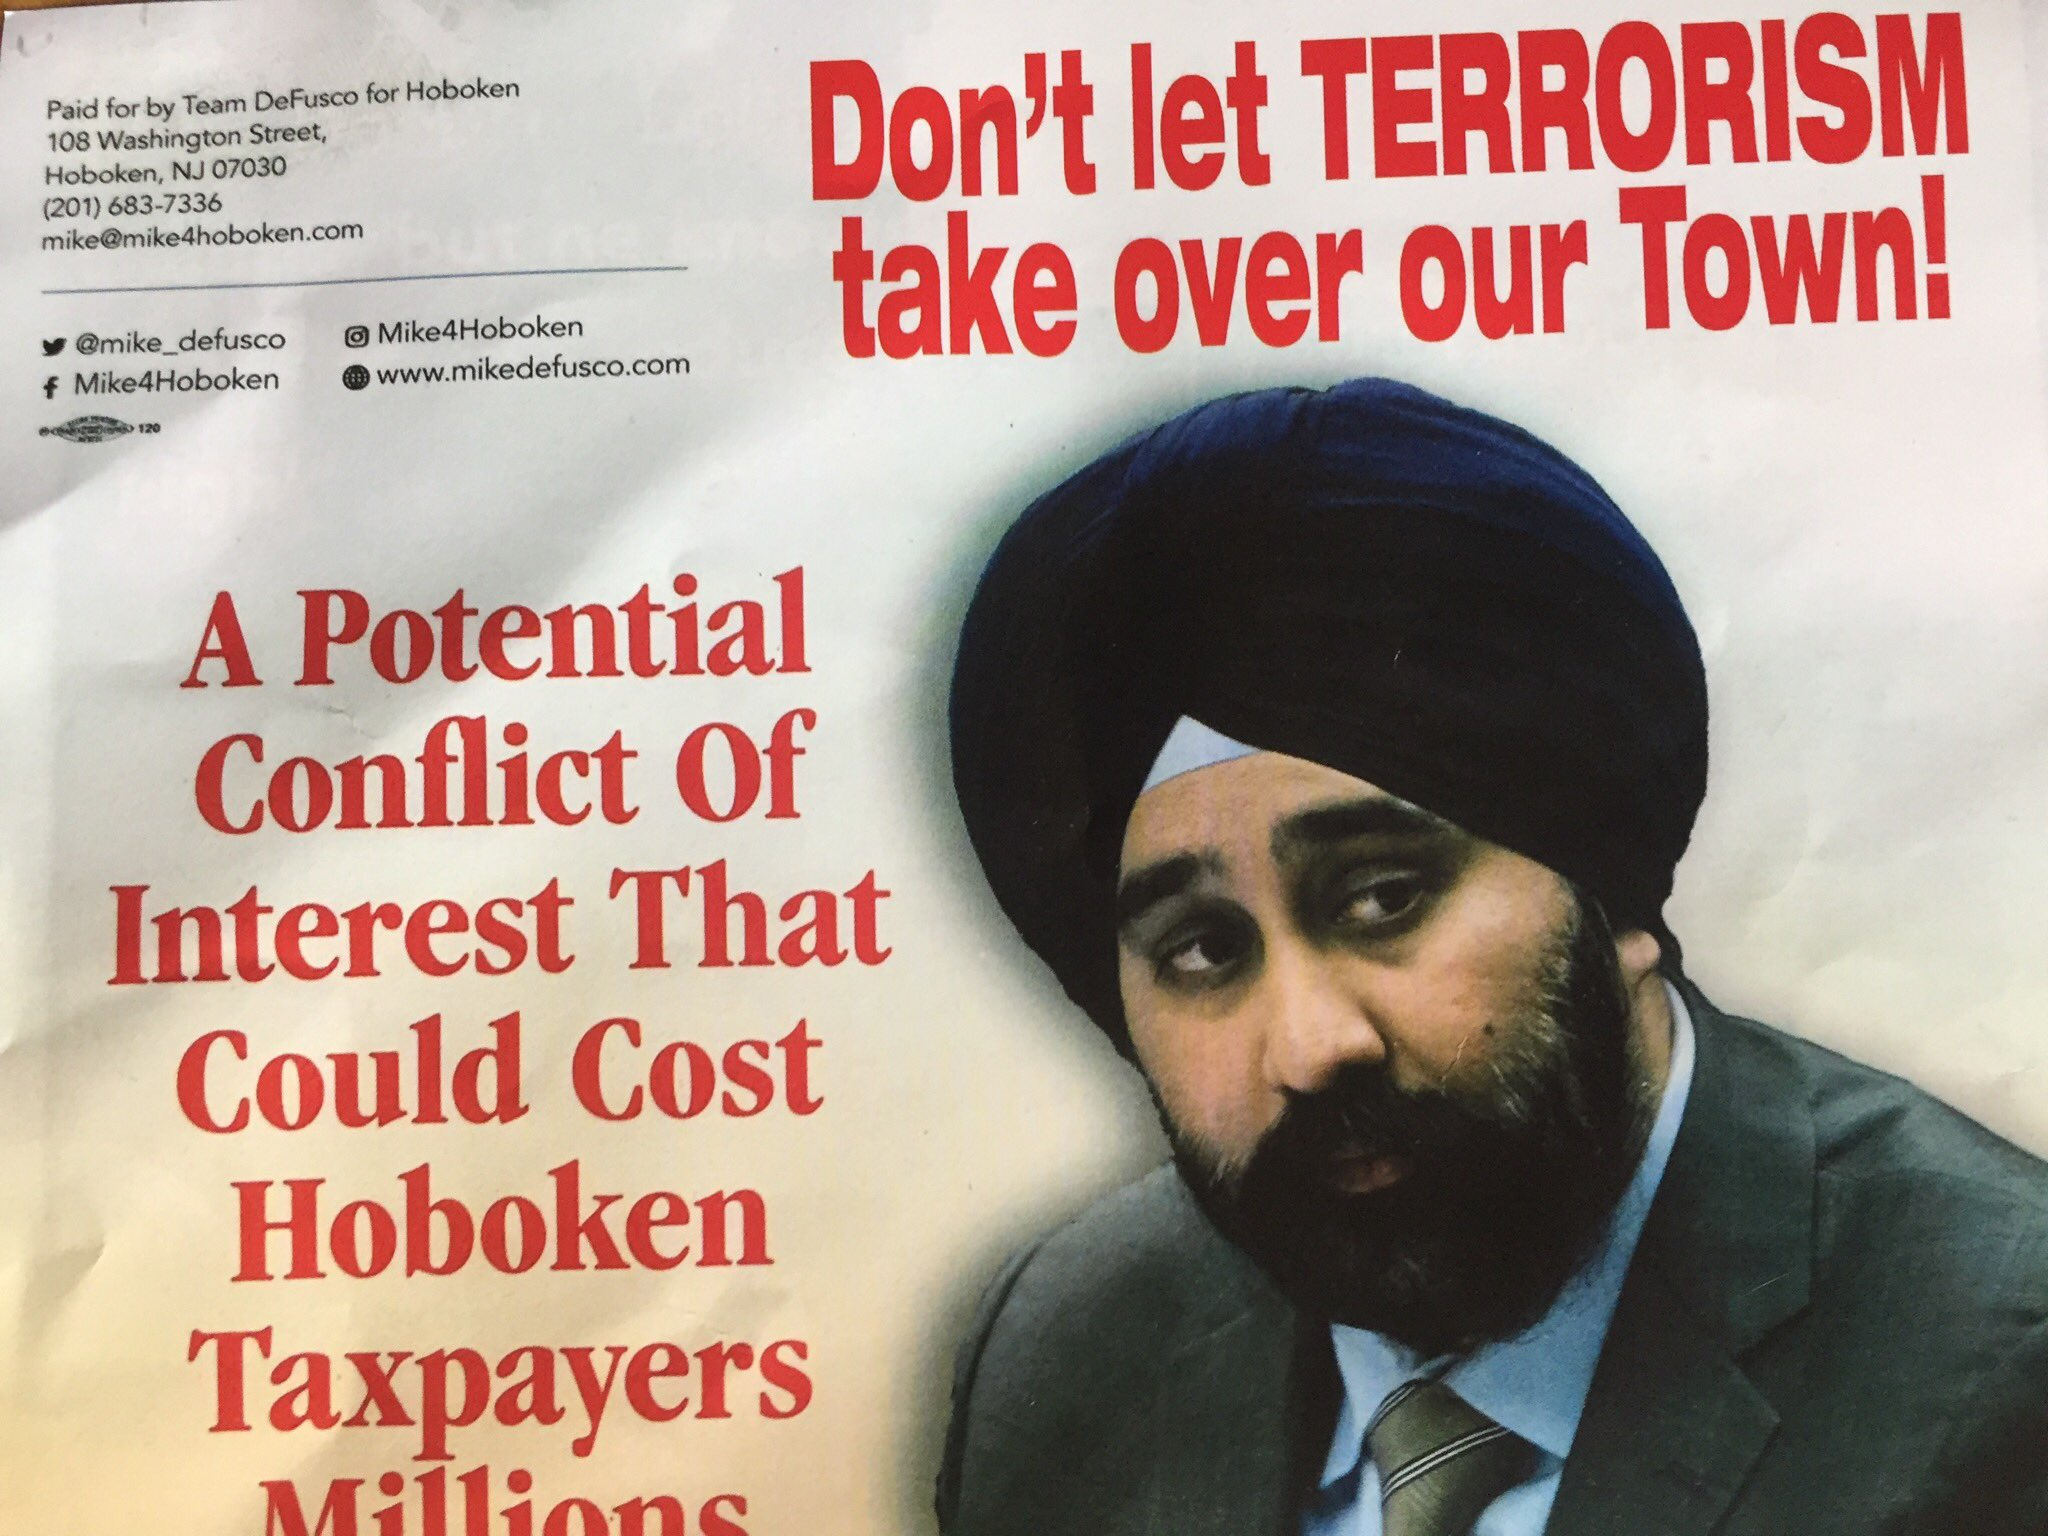 Ravi Bhalla becomes first turbaned Sikh mayor in NJ, conquered racist fliers